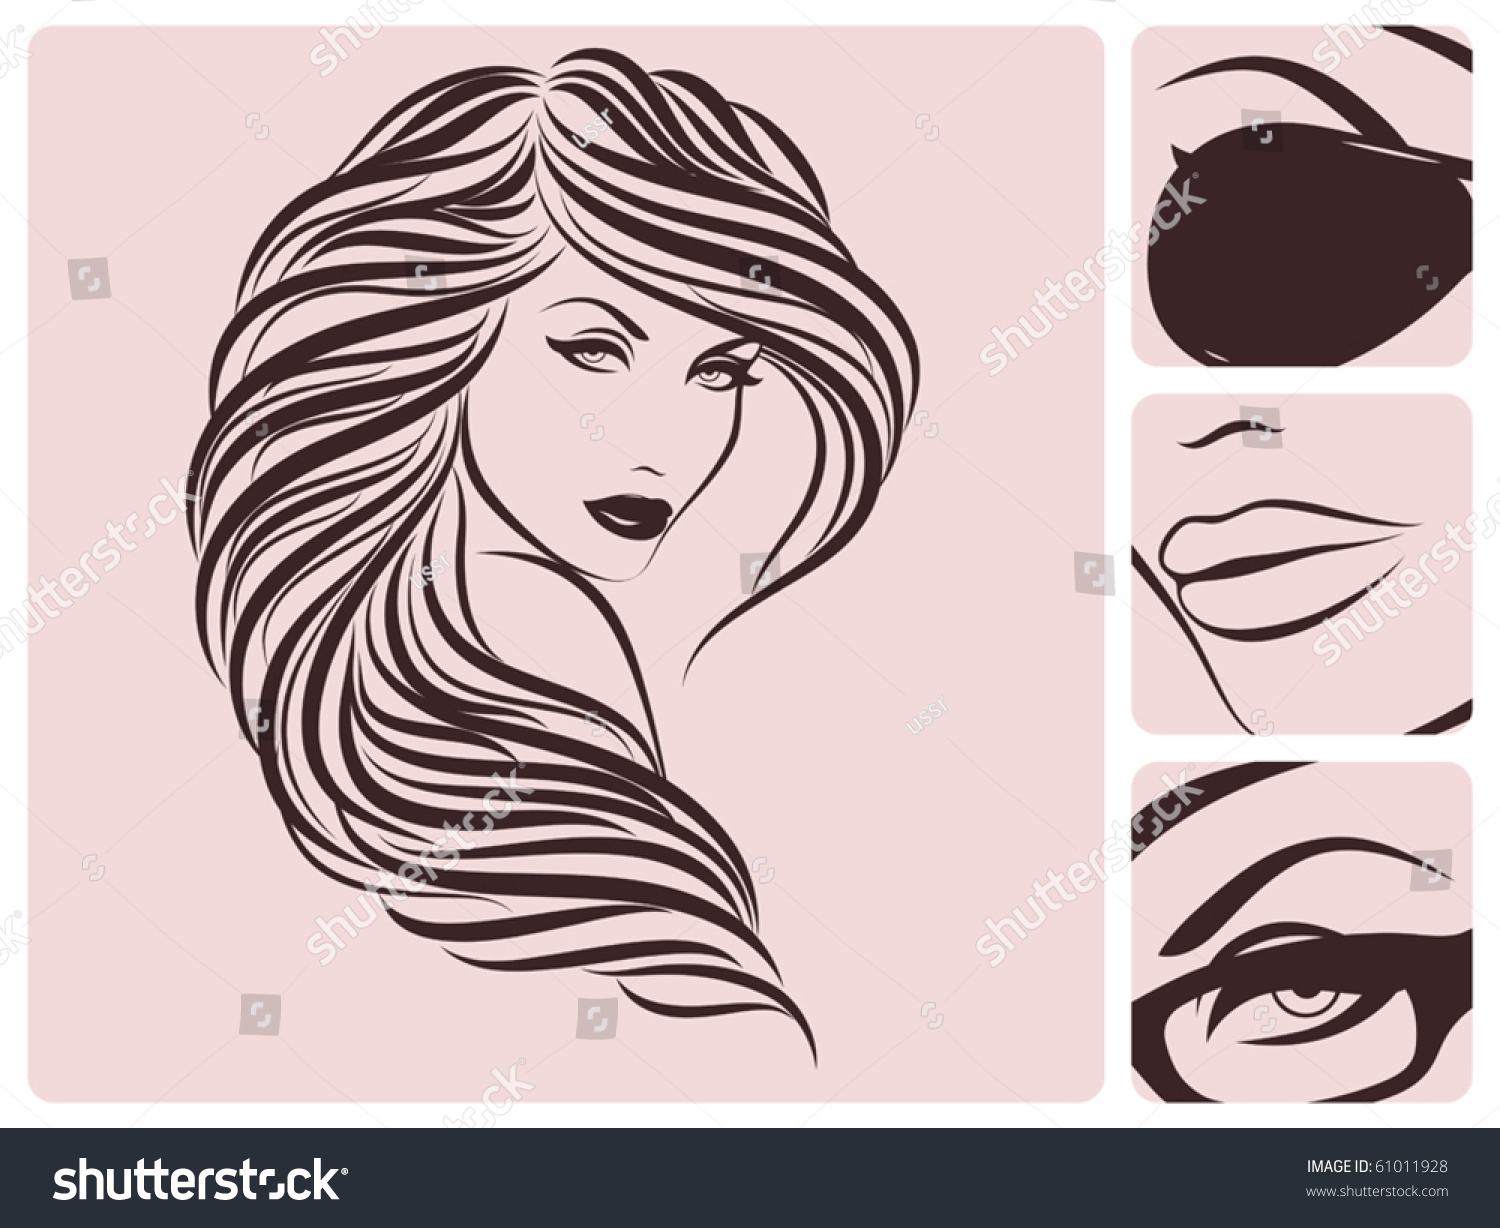 Long Curly Hairstyle. Vector Illustration. - 61011928 : Shutterstock